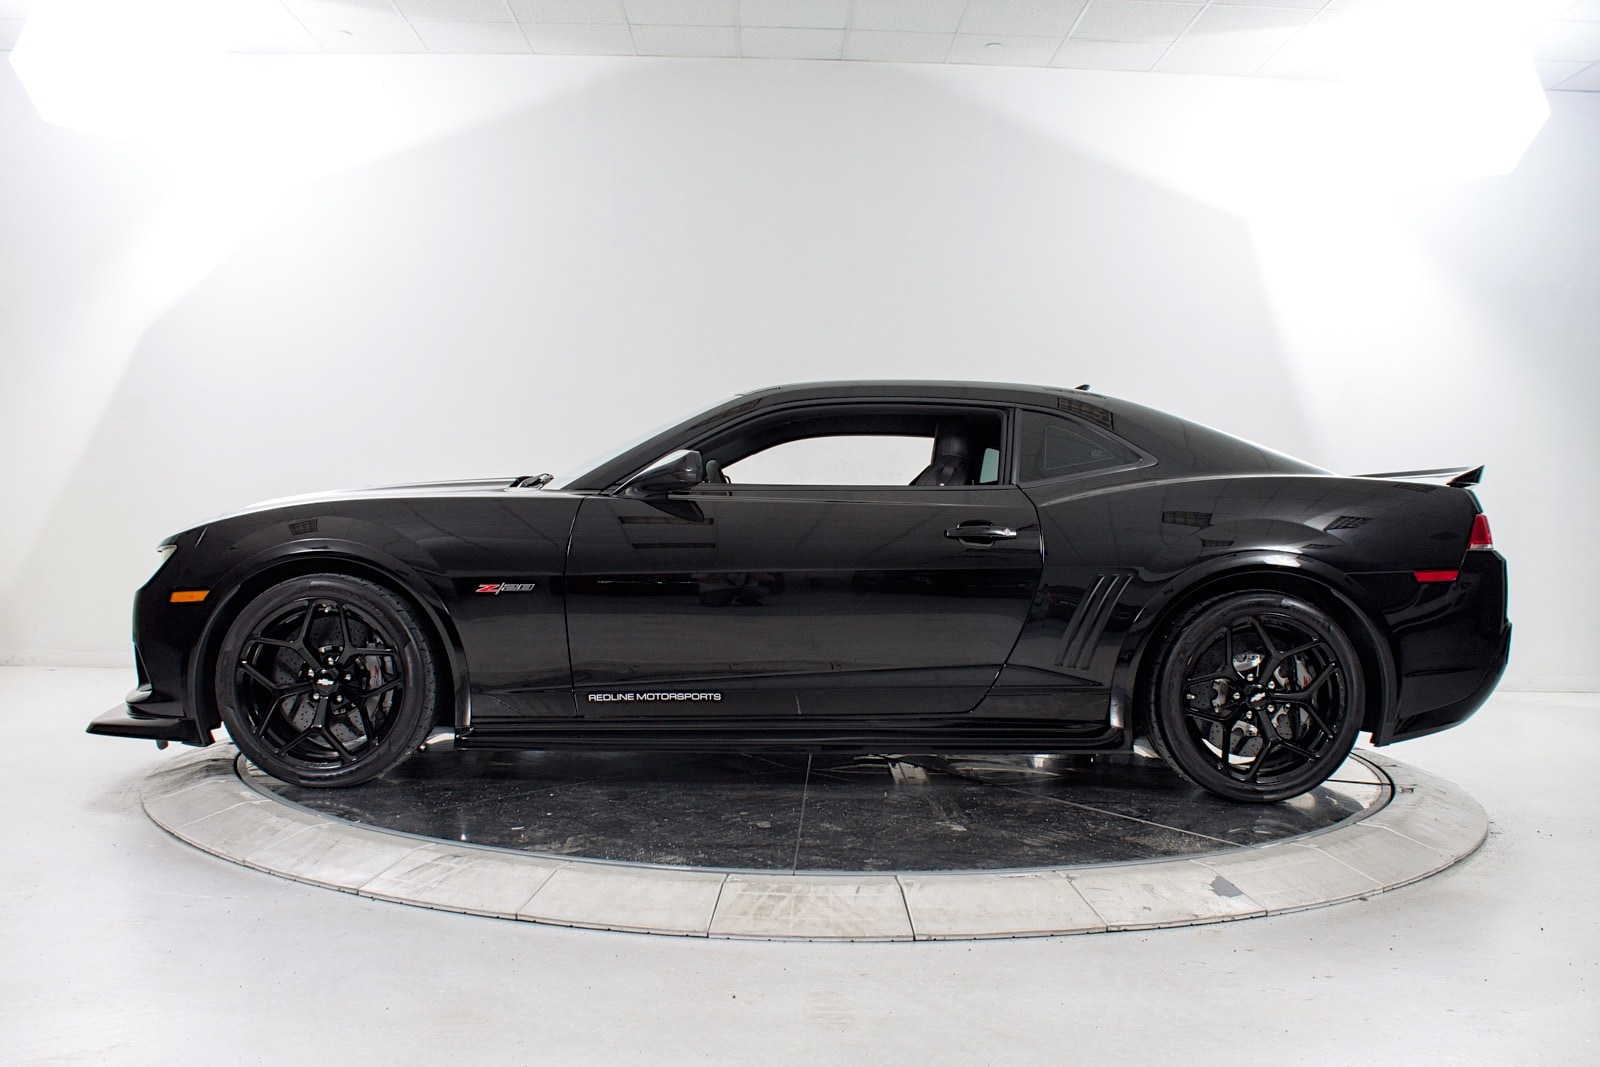 Used 2015 CHEVROLET CAMARO Z28 For Sale Fort Lauderdale FL